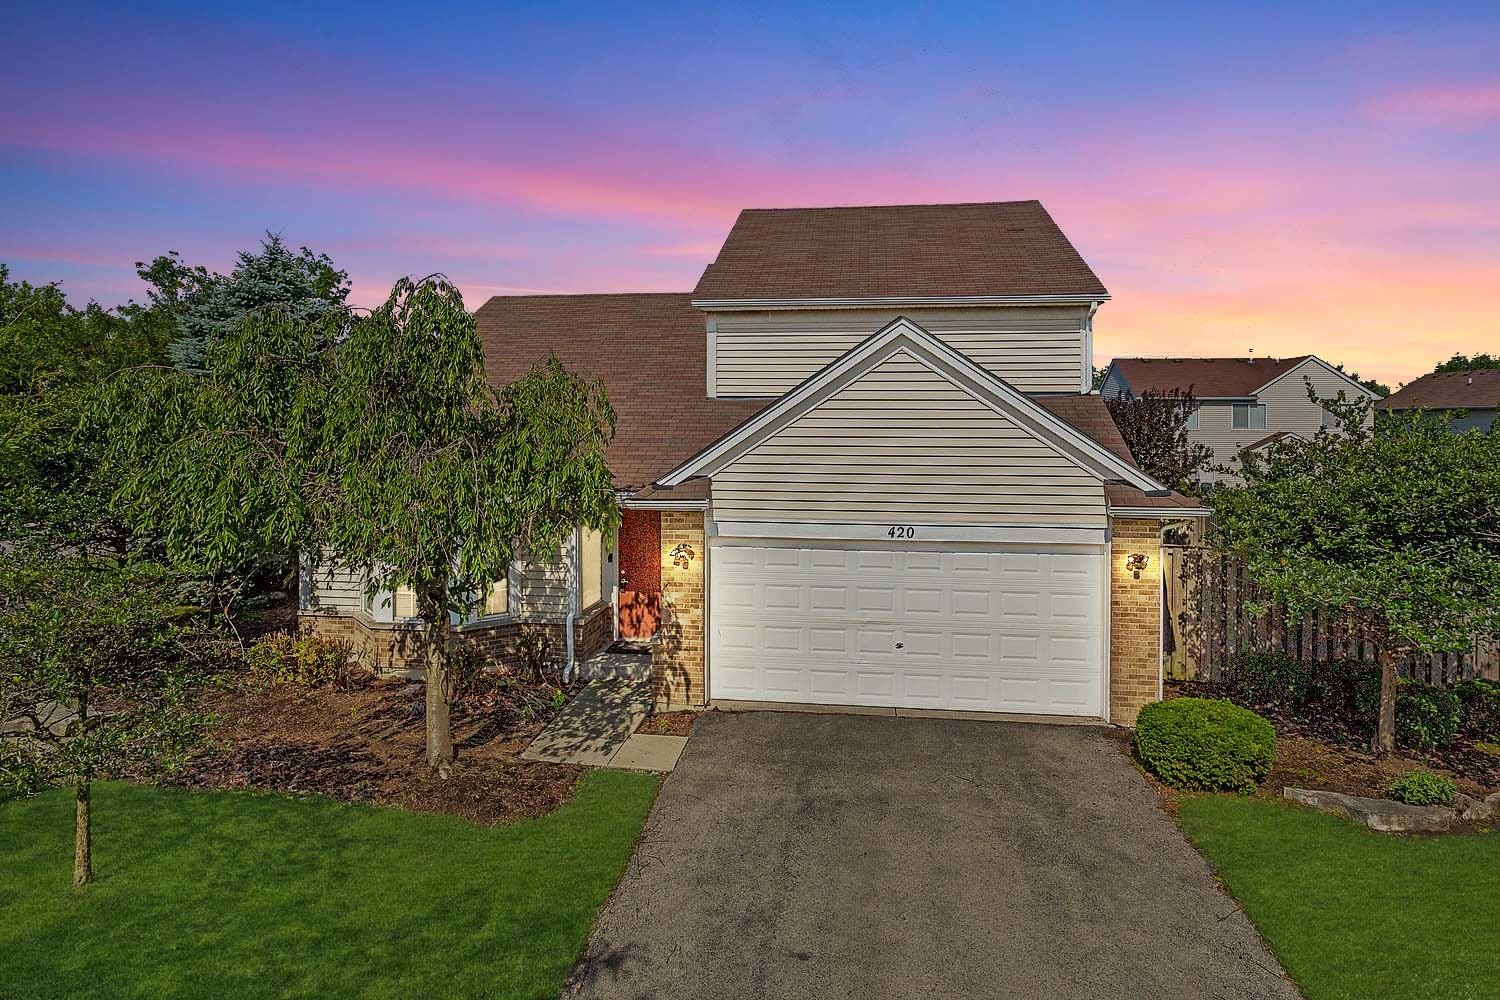 Photo of 420 N Chalmers Court, Romeoville, IL 60446 (MLS # 11143443)